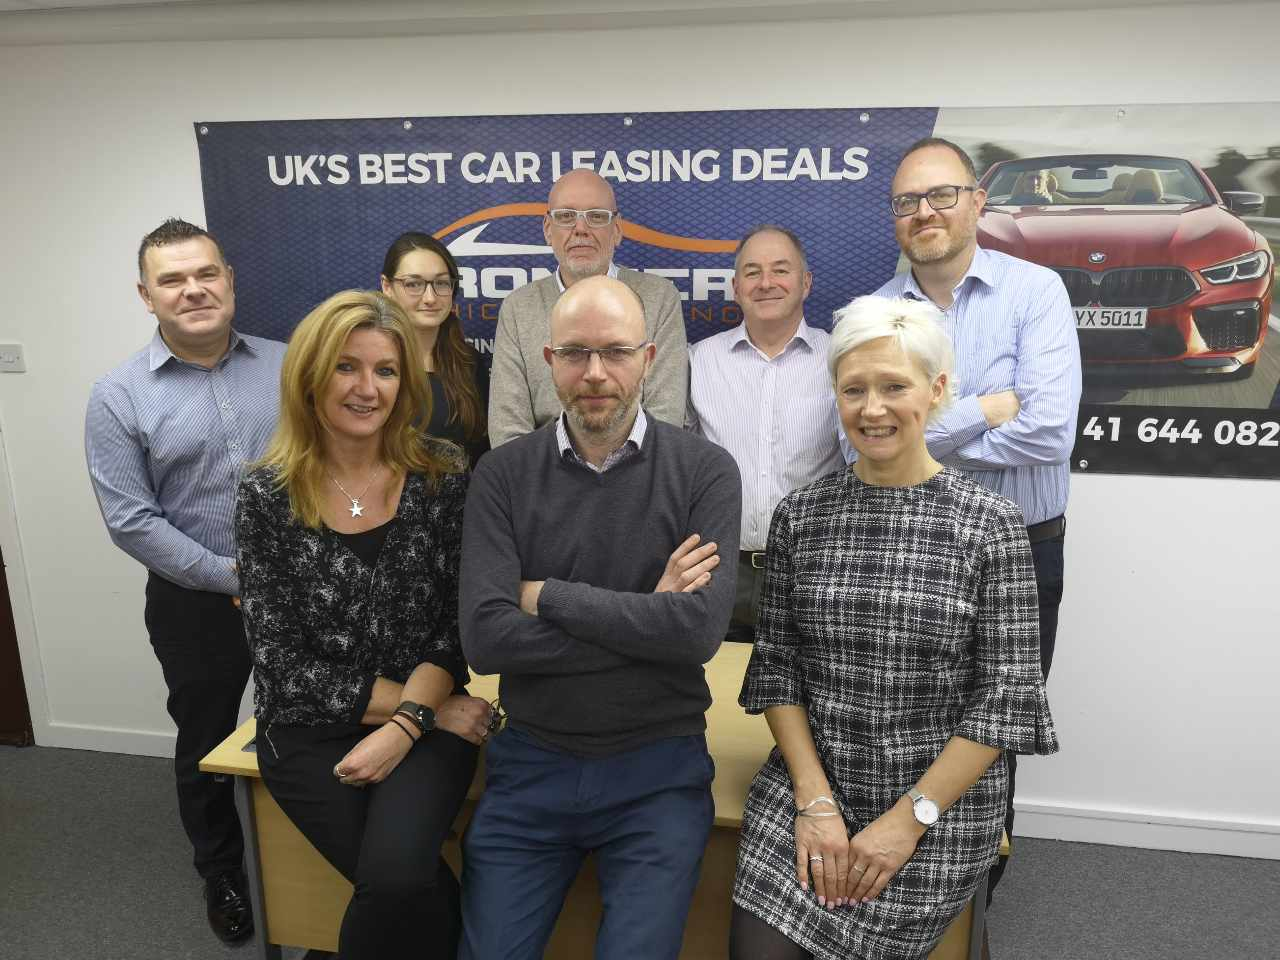 The Frontier Vehicle Leasing team